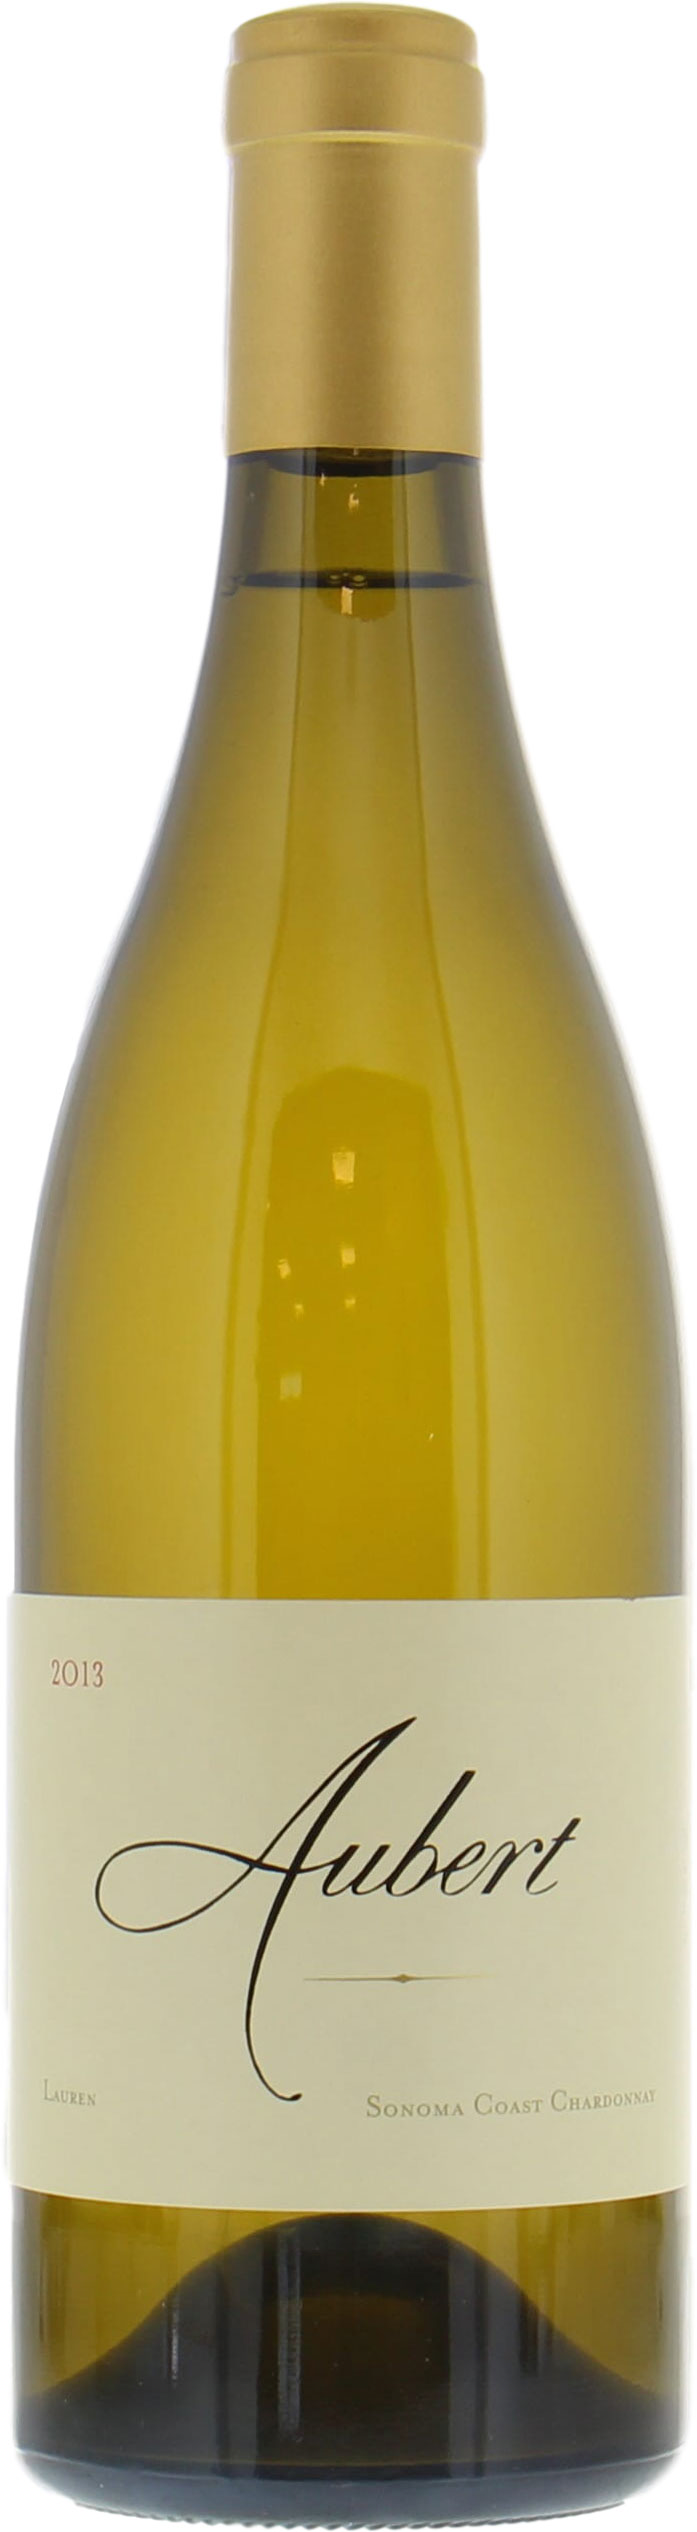 Aubert - Chardonnay Lauren Vineyard 2013